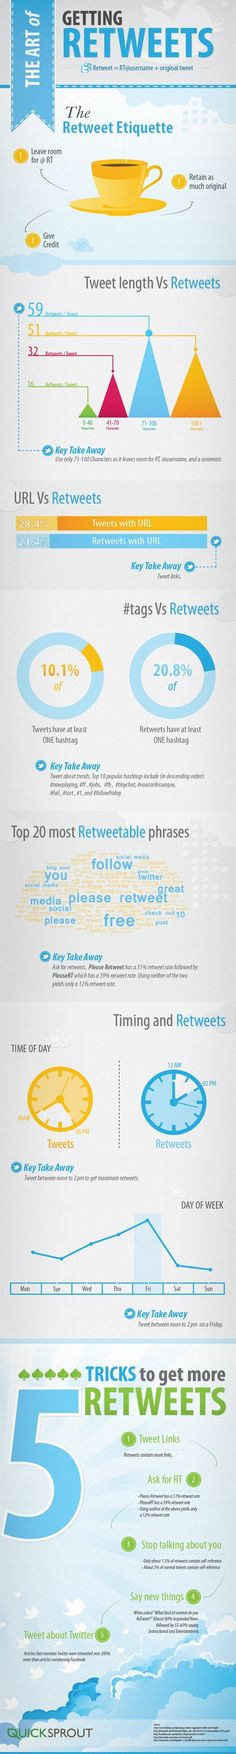 How to get more ReTweets | Econsultancy #Twitter #Marketing #Social